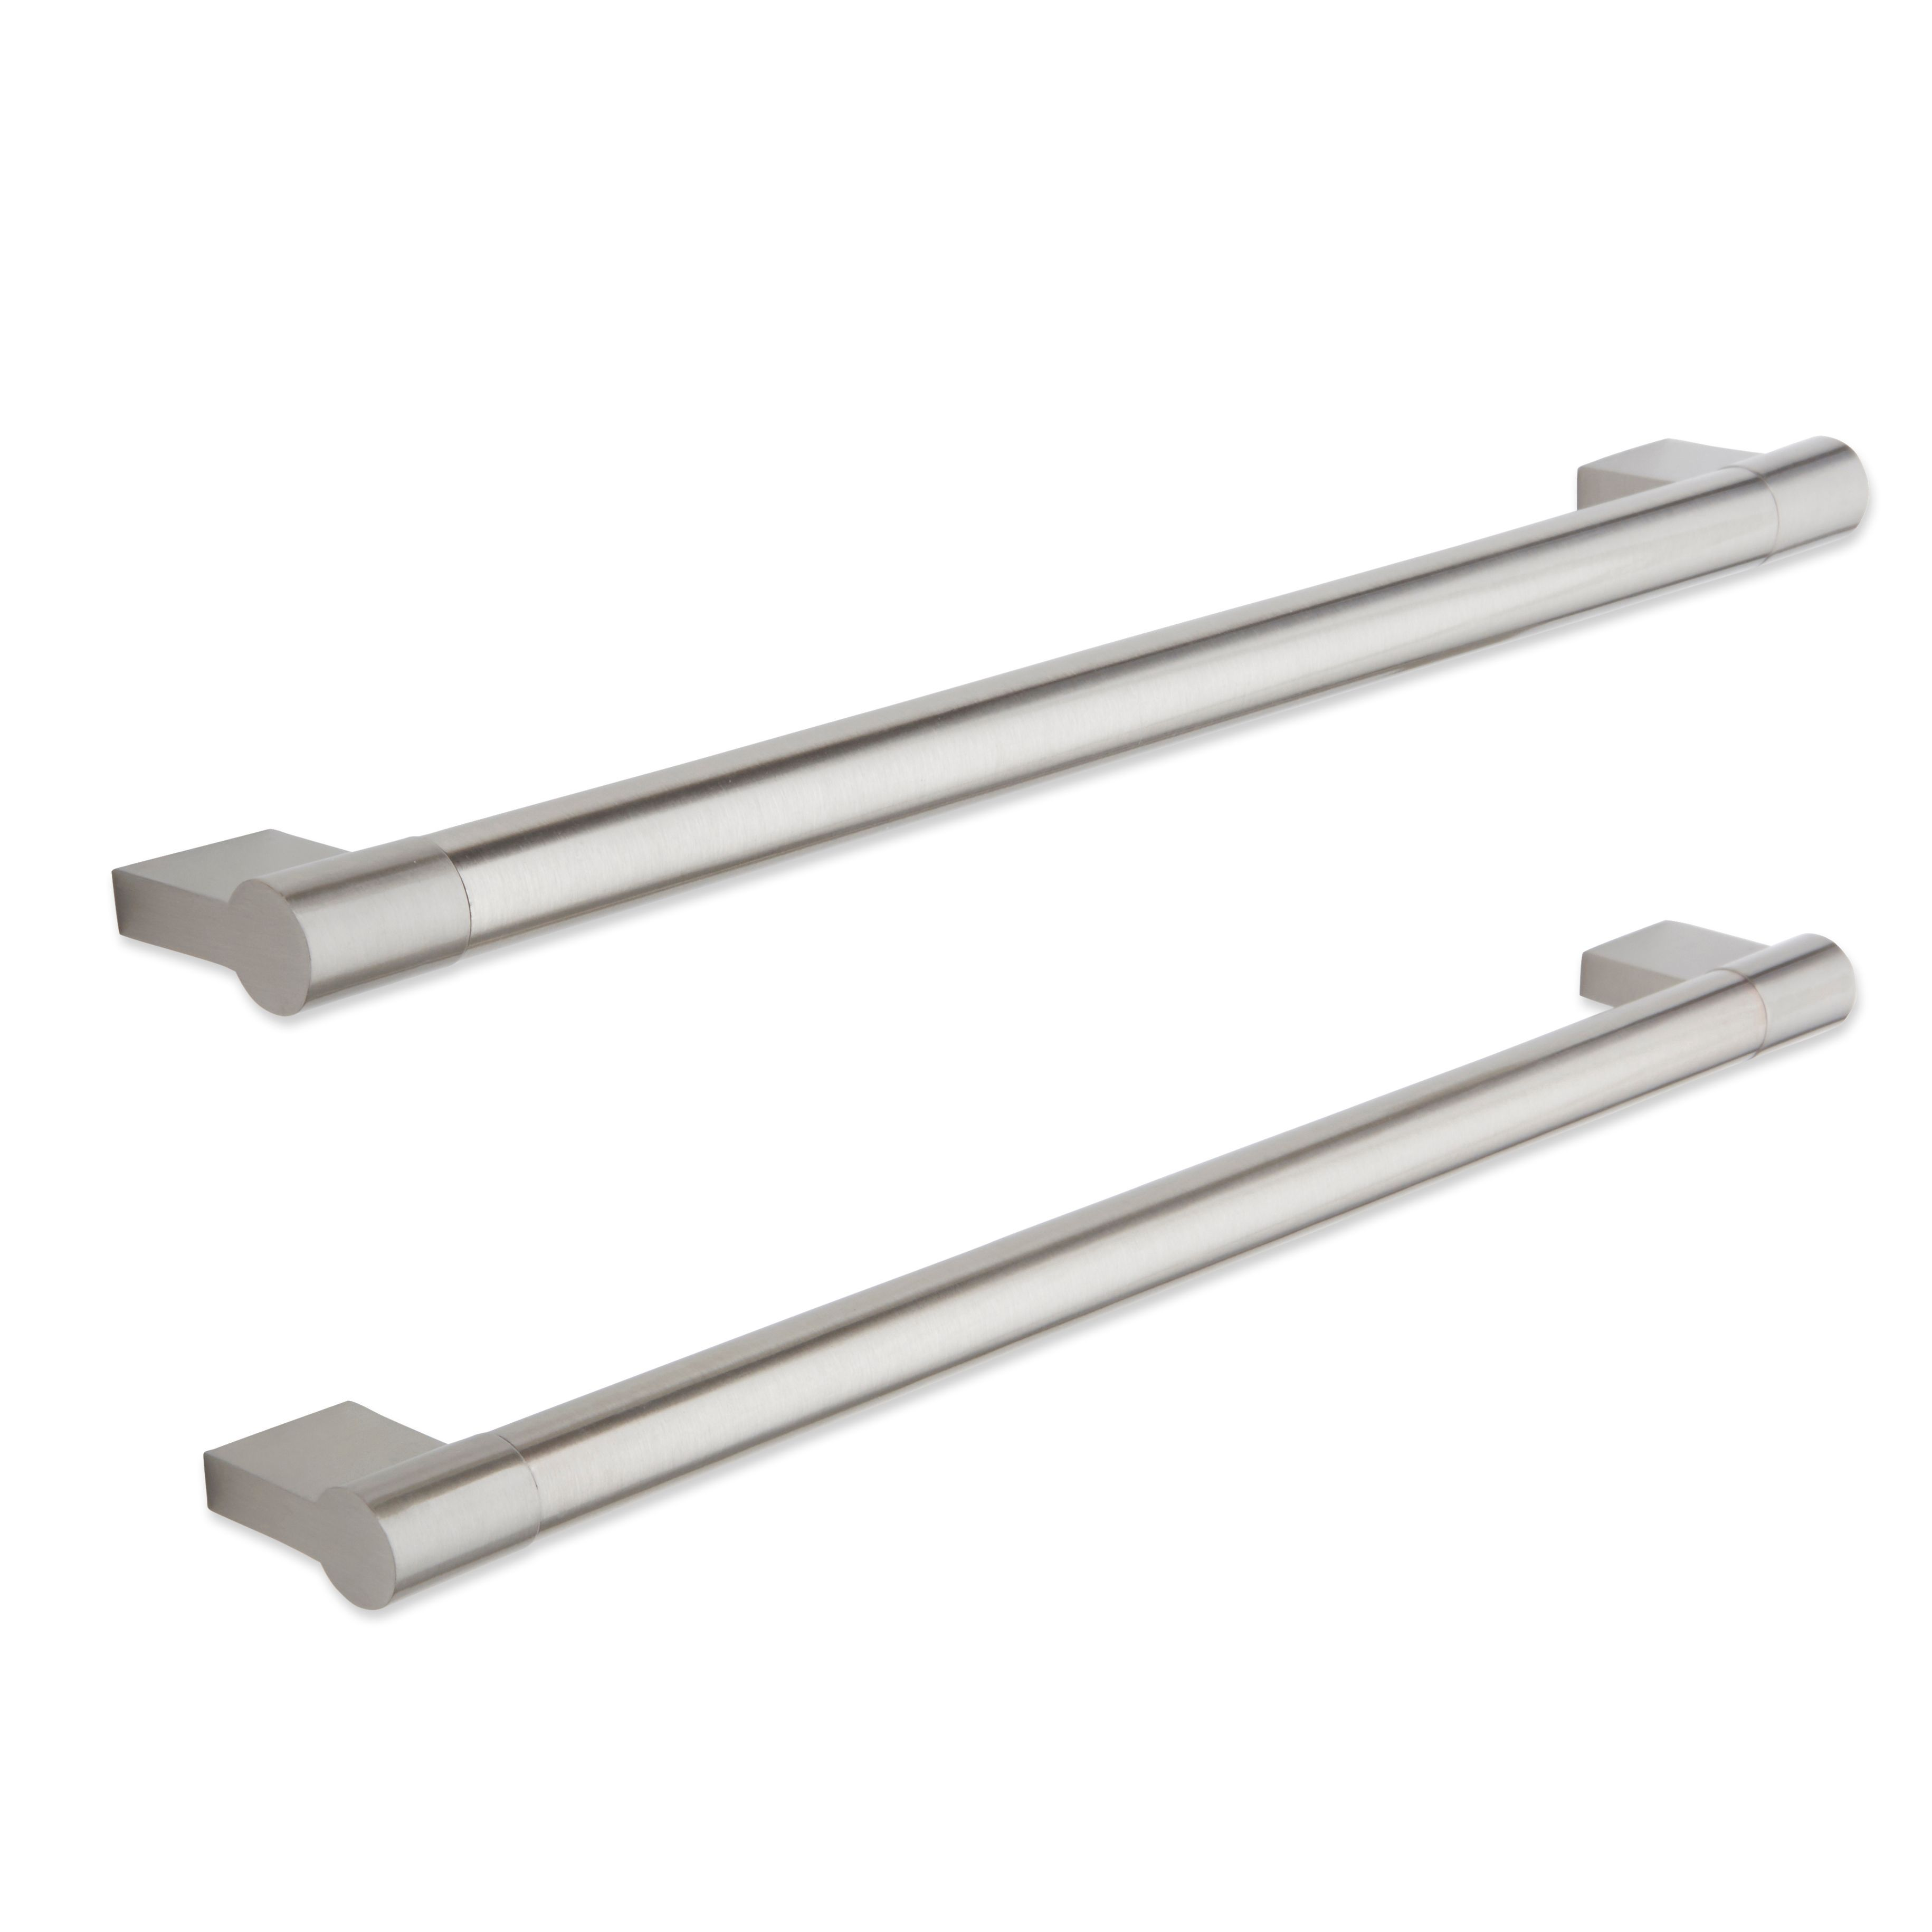 brushed nickel kitchen hardware stainless steel faucet with pull-down spray it kitchens effect straight cabinet handle